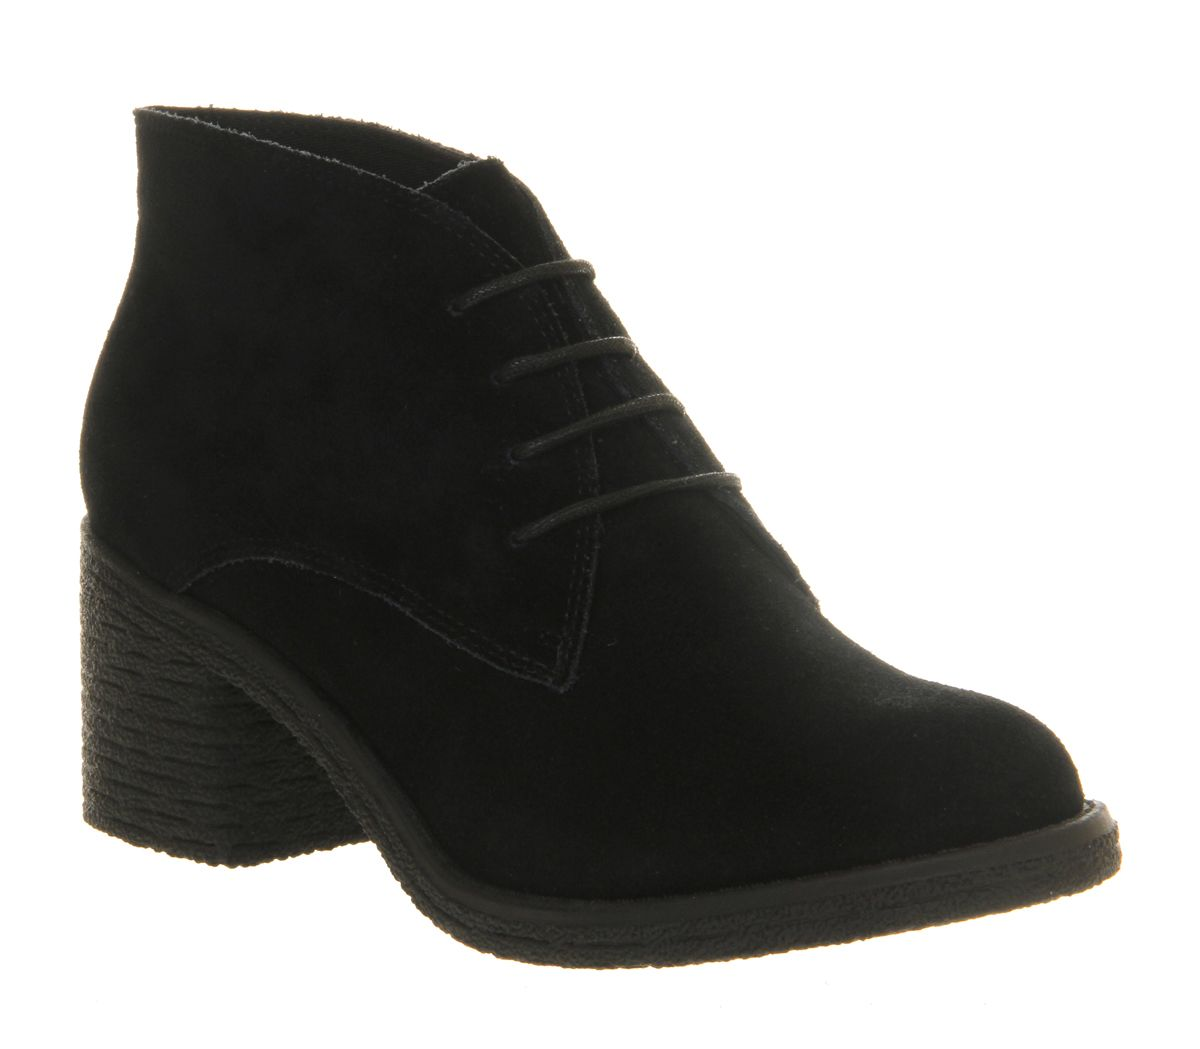 78 Best images about Botin on Pinterest | Suede ankle boots, Steve ...